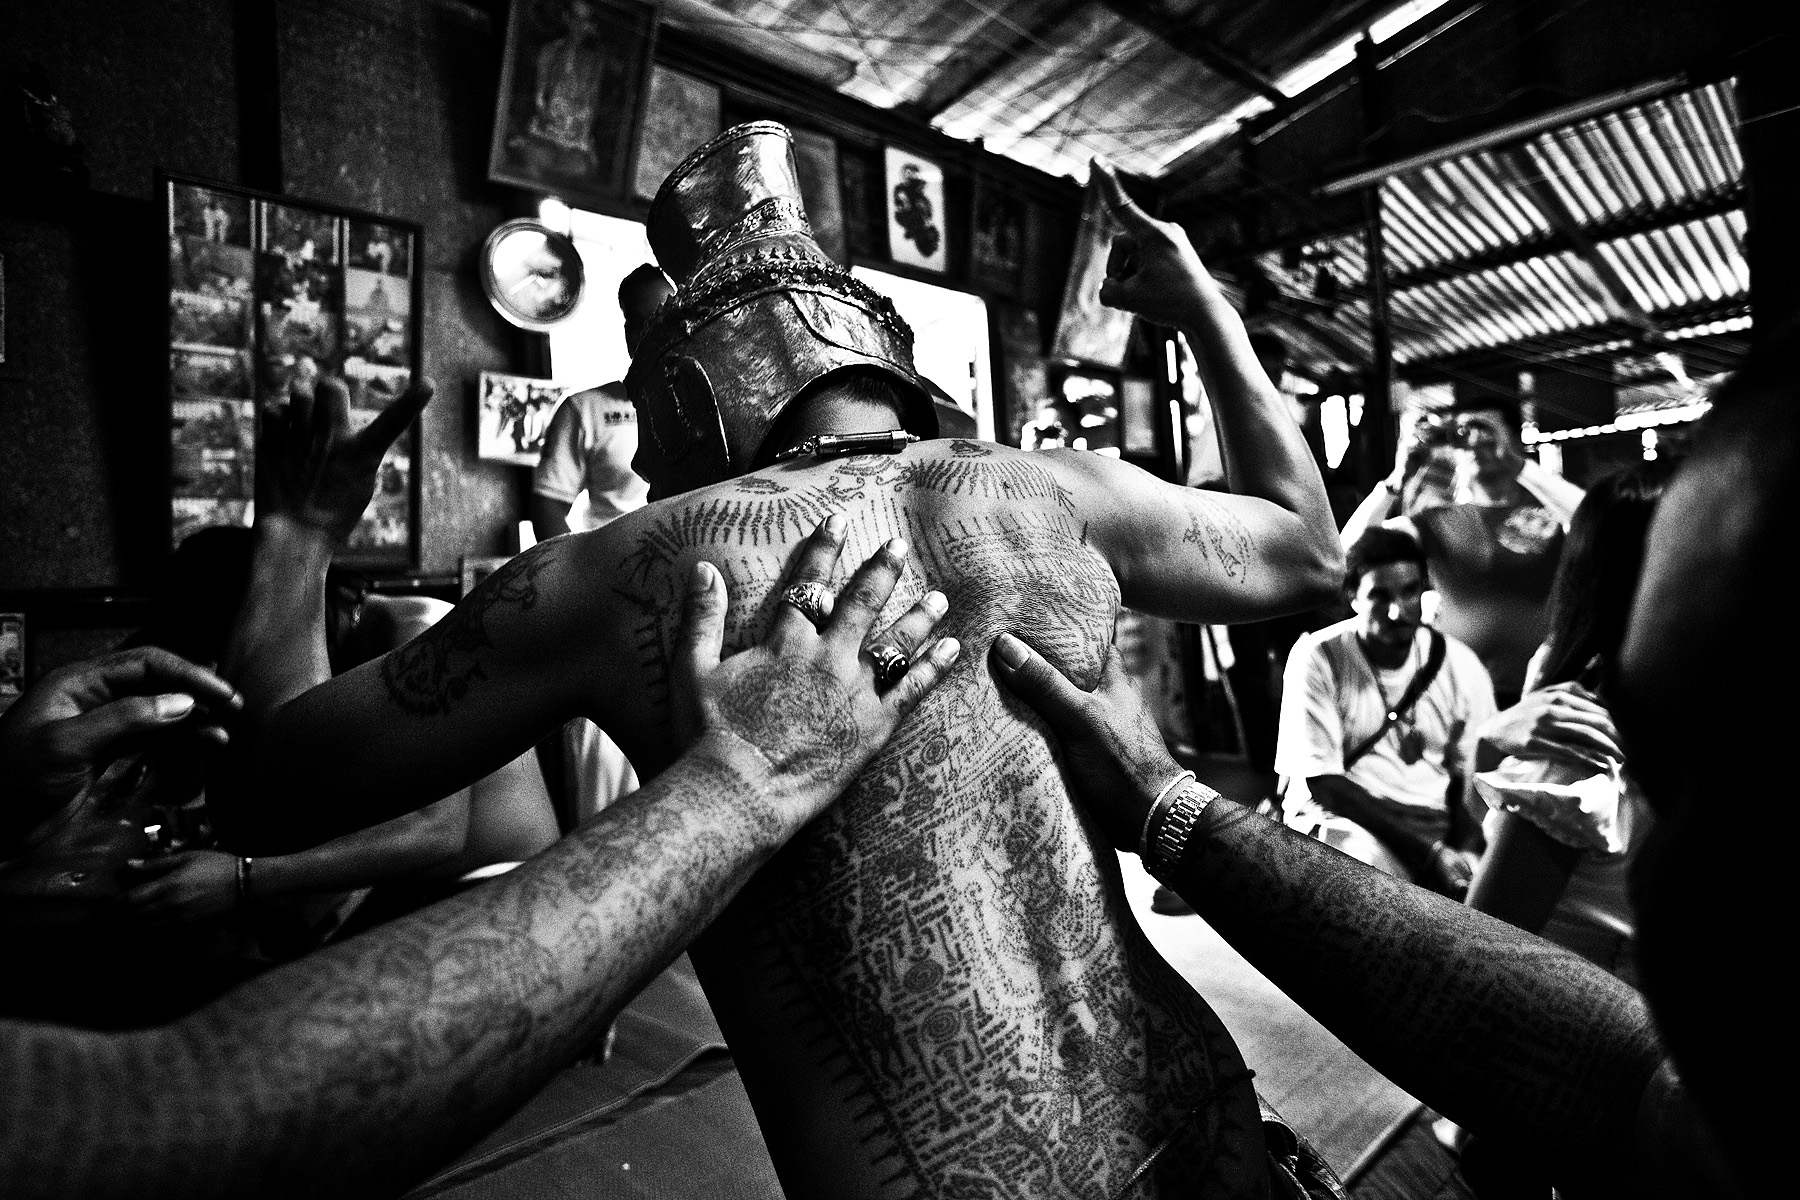 A devotee enters a state of trance during a ceremony